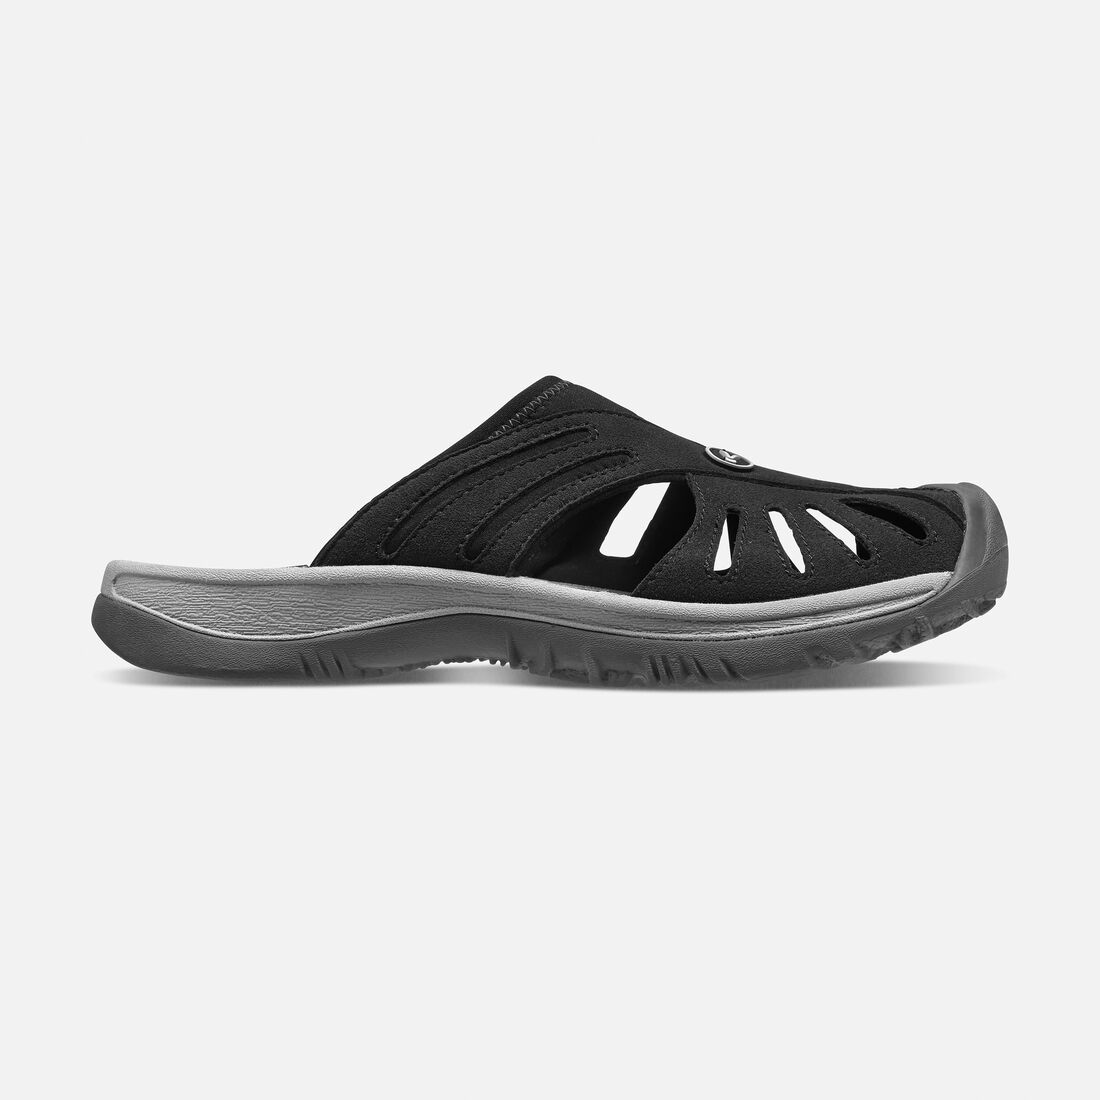 68c7a56fd9d Women s Rose Slide in Black Neutral Gray - large view.